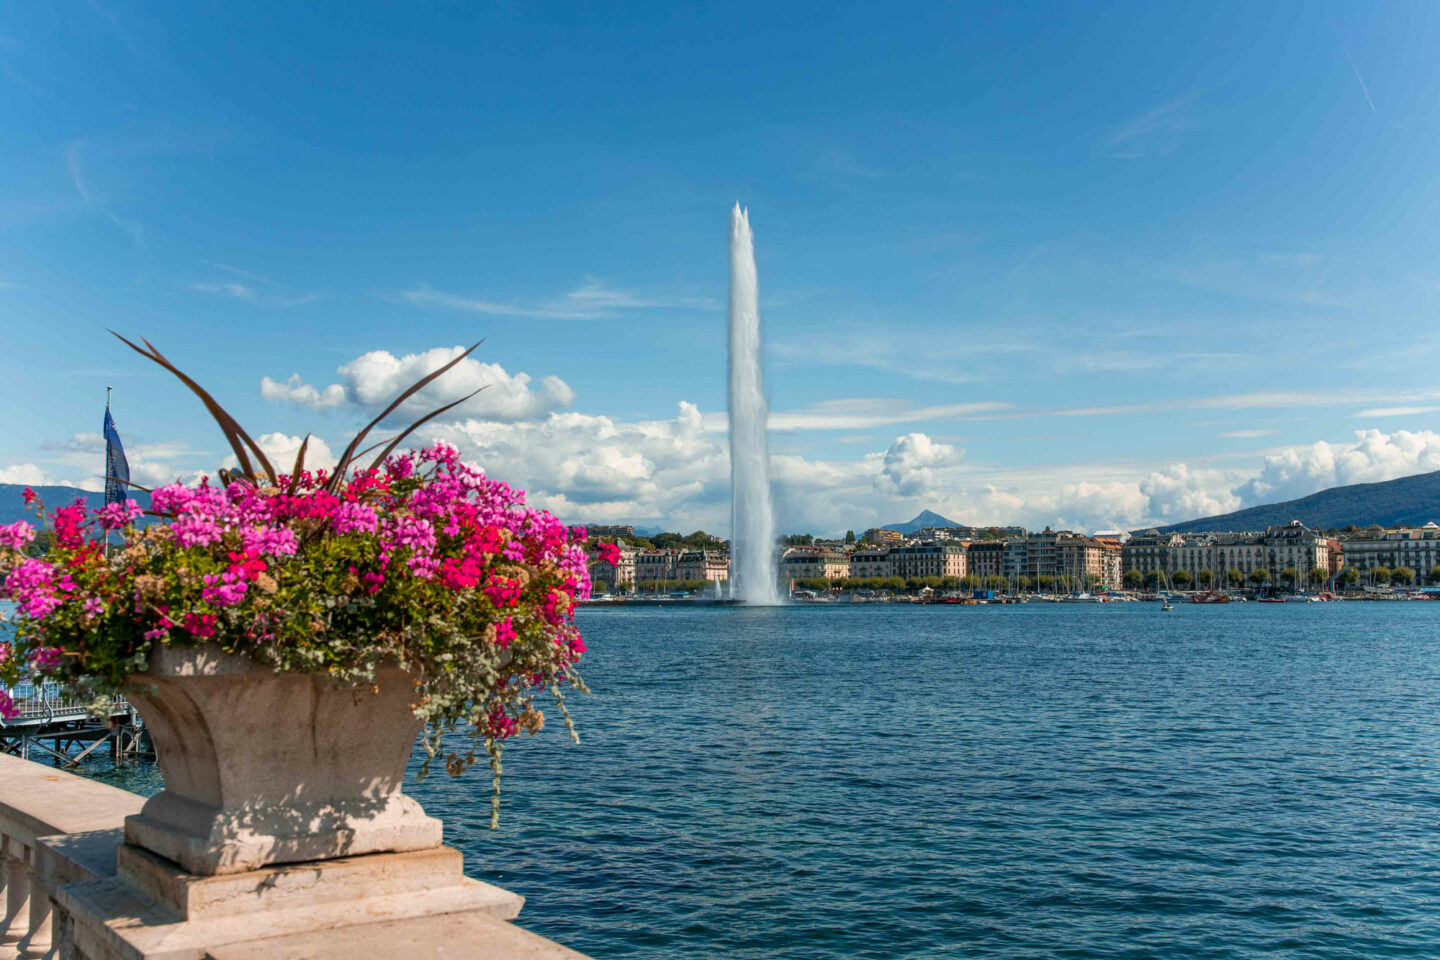 7-things-to-do-in-geneva-Bucket-list--Instagram-Story-Template--kelseyinlondon-Kelsey-Heinrichs-2